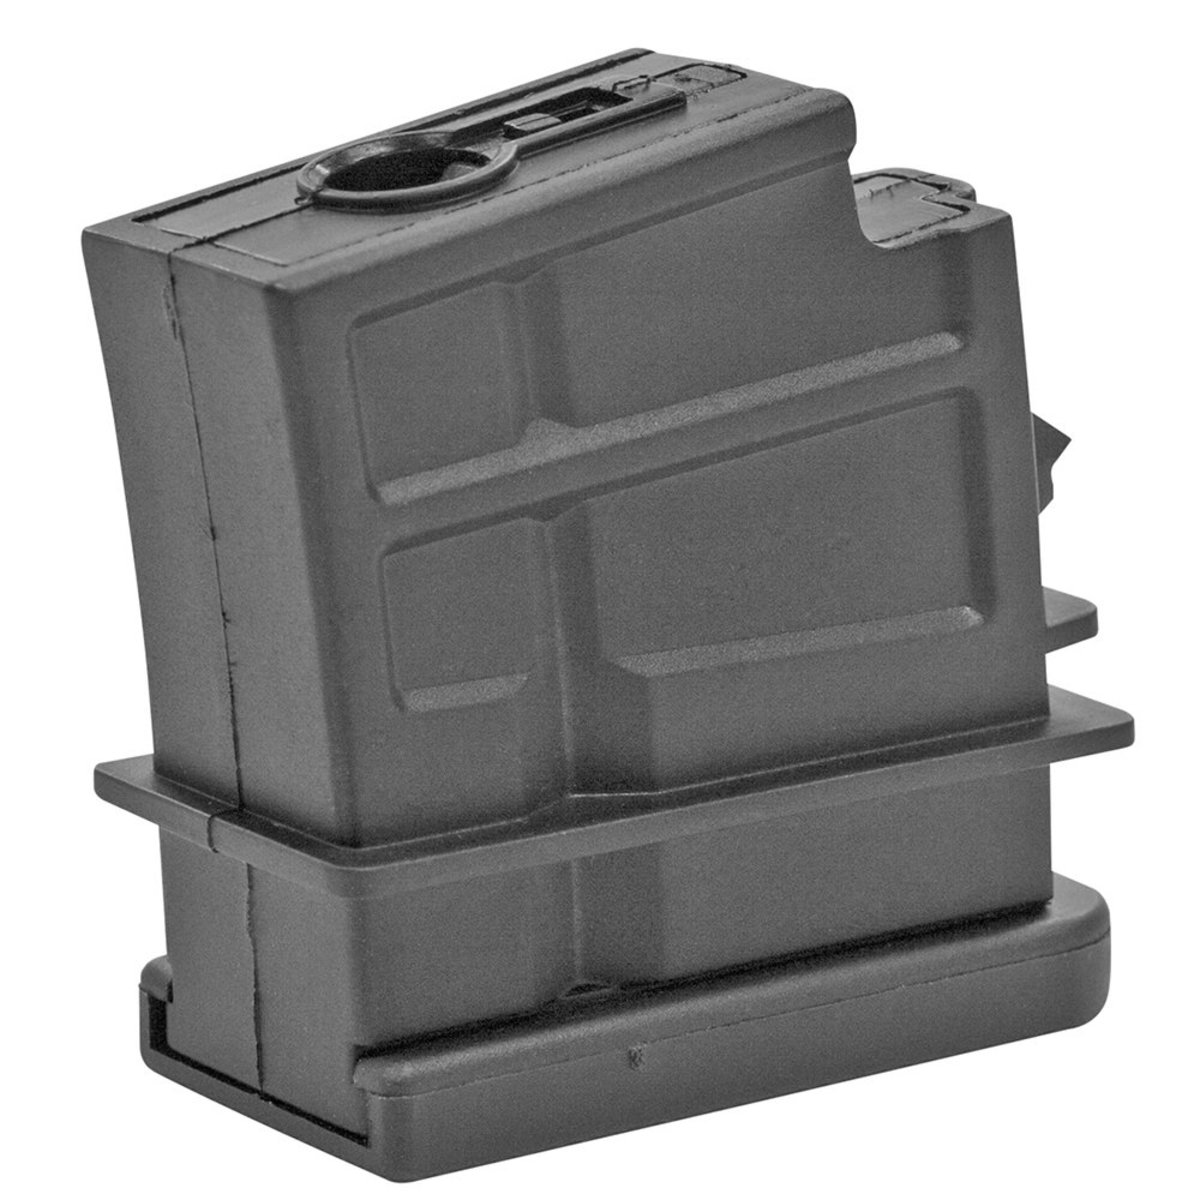 View larger image of Umarex H&K G36 35 RD Mid-Cap Airsoft Magazine